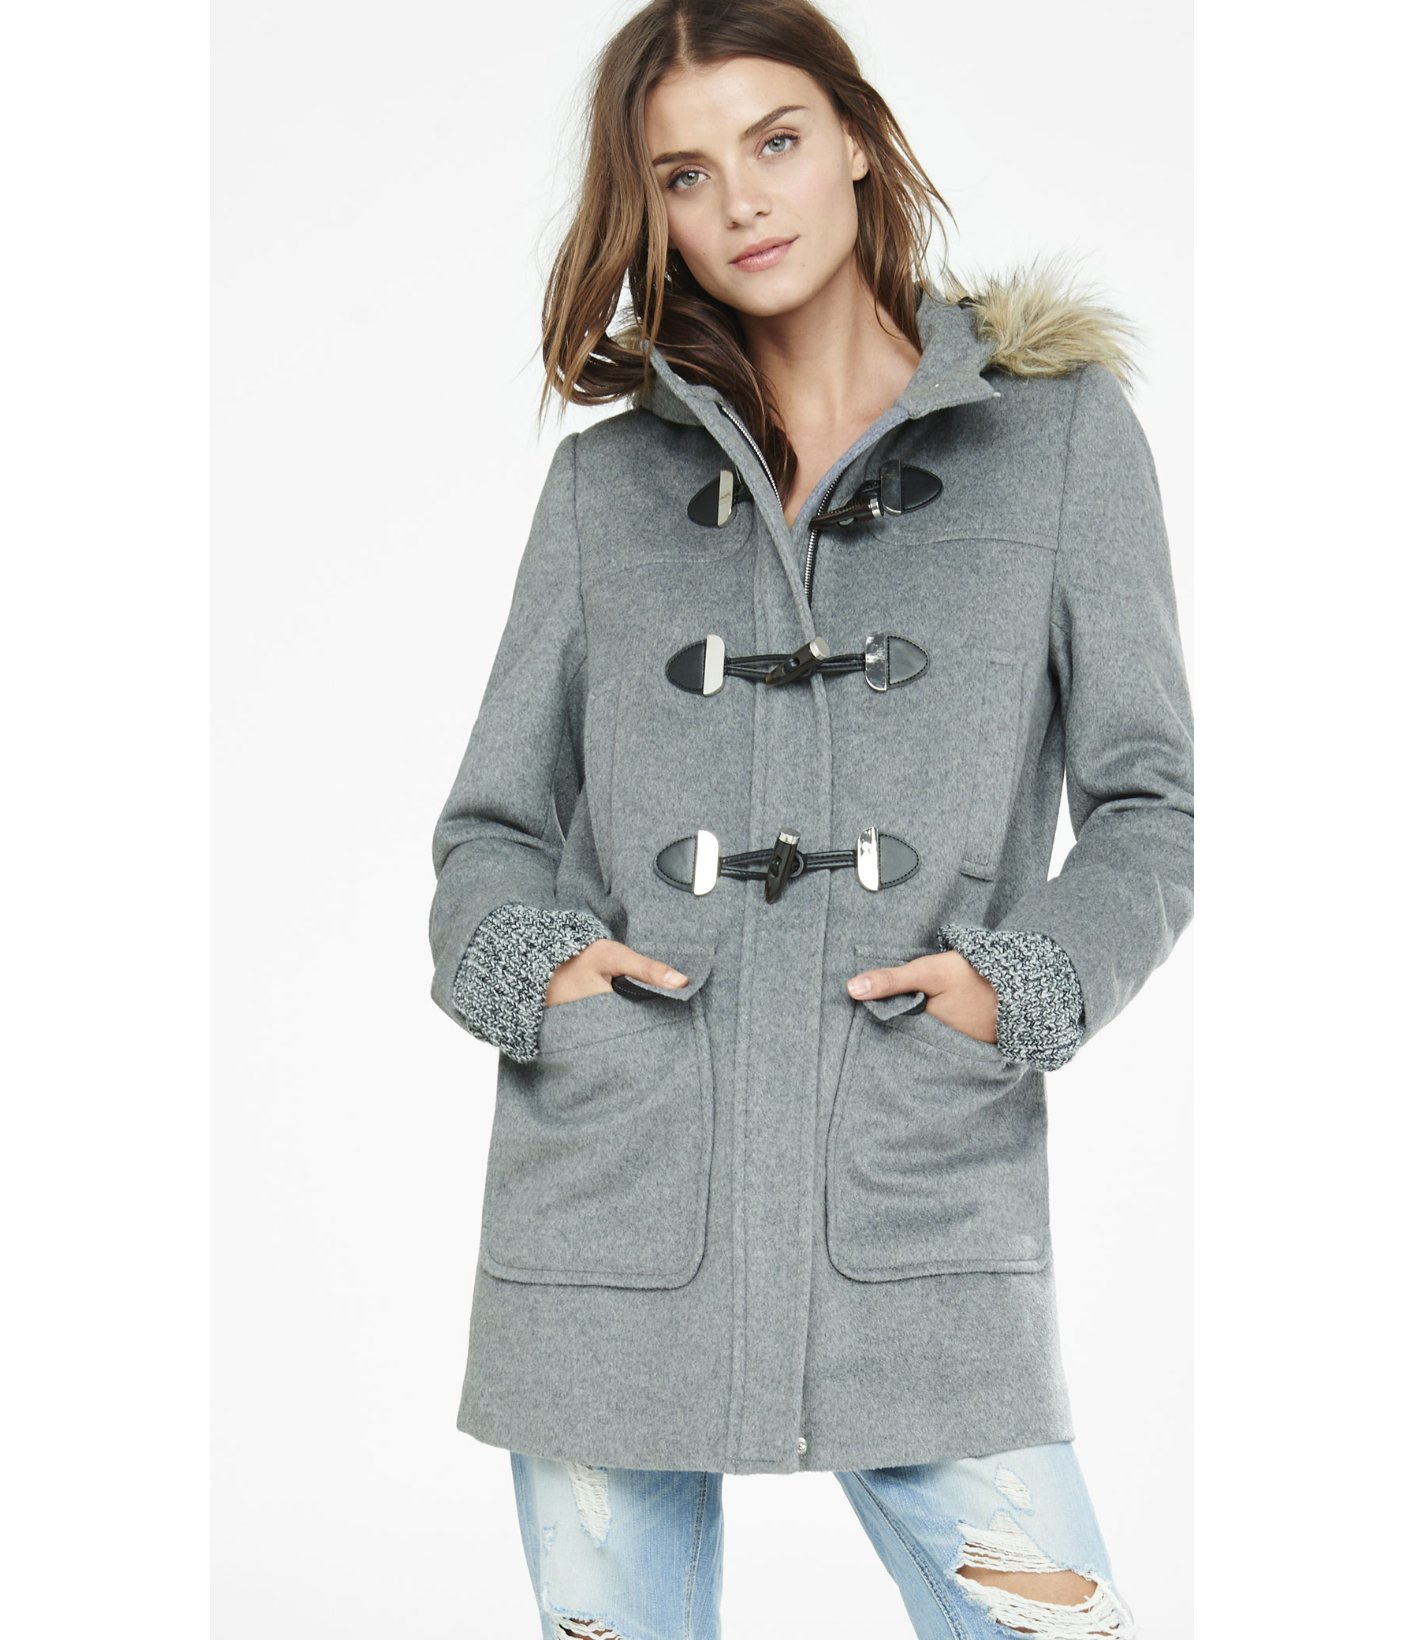 express toggle duffle coat in gray lyst. Black Bedroom Furniture Sets. Home Design Ideas